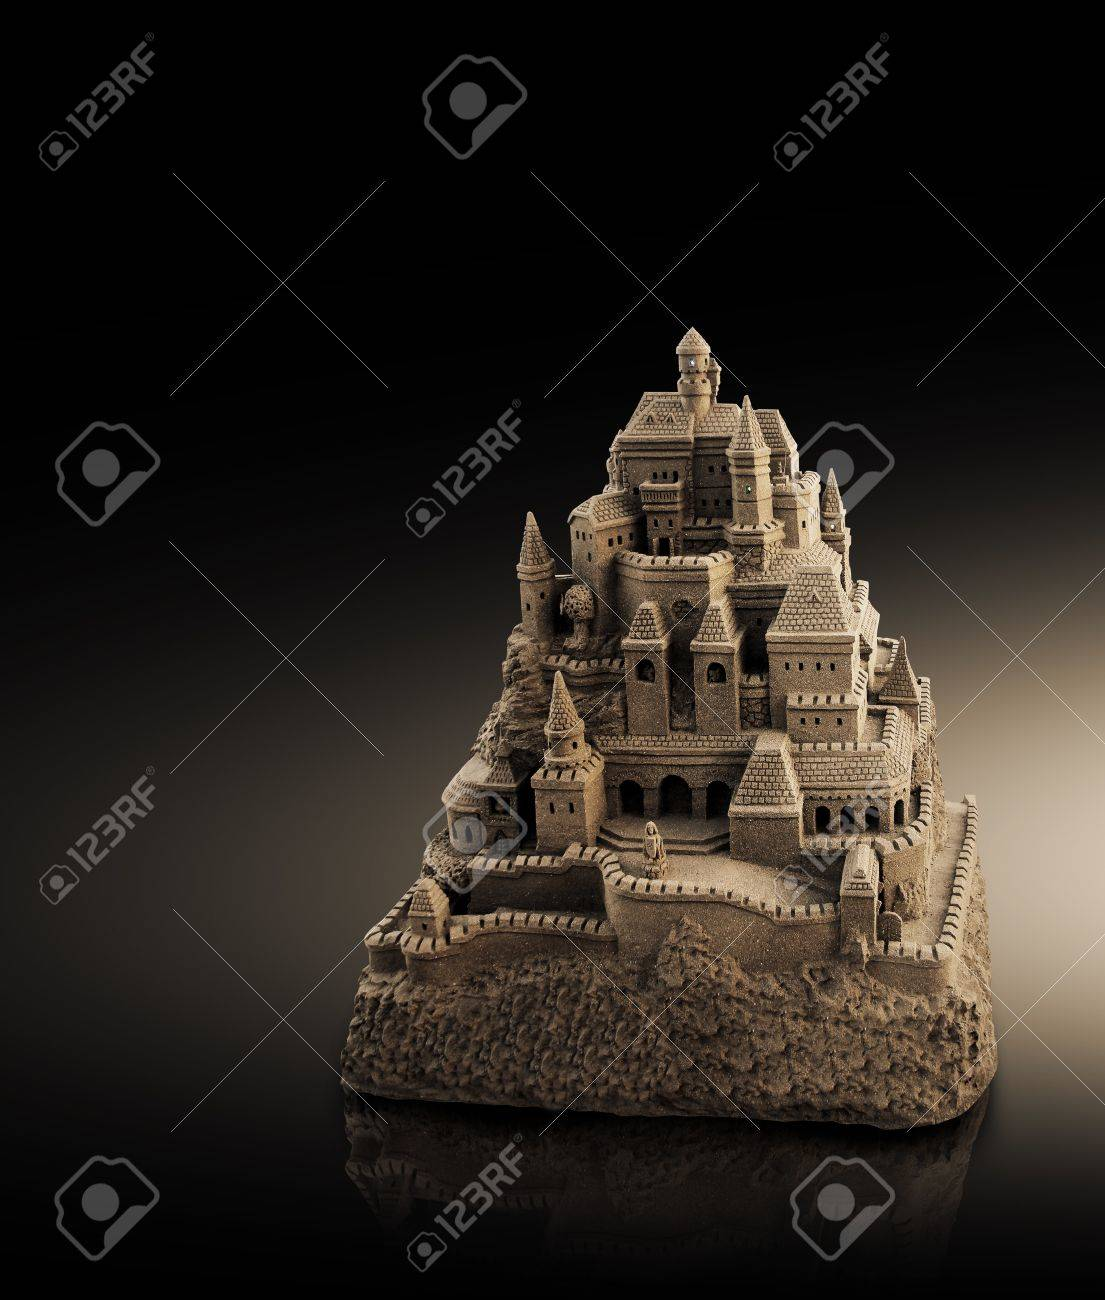 large sandcastle with many towers and crenels in retro look Stock Photo - 15301292